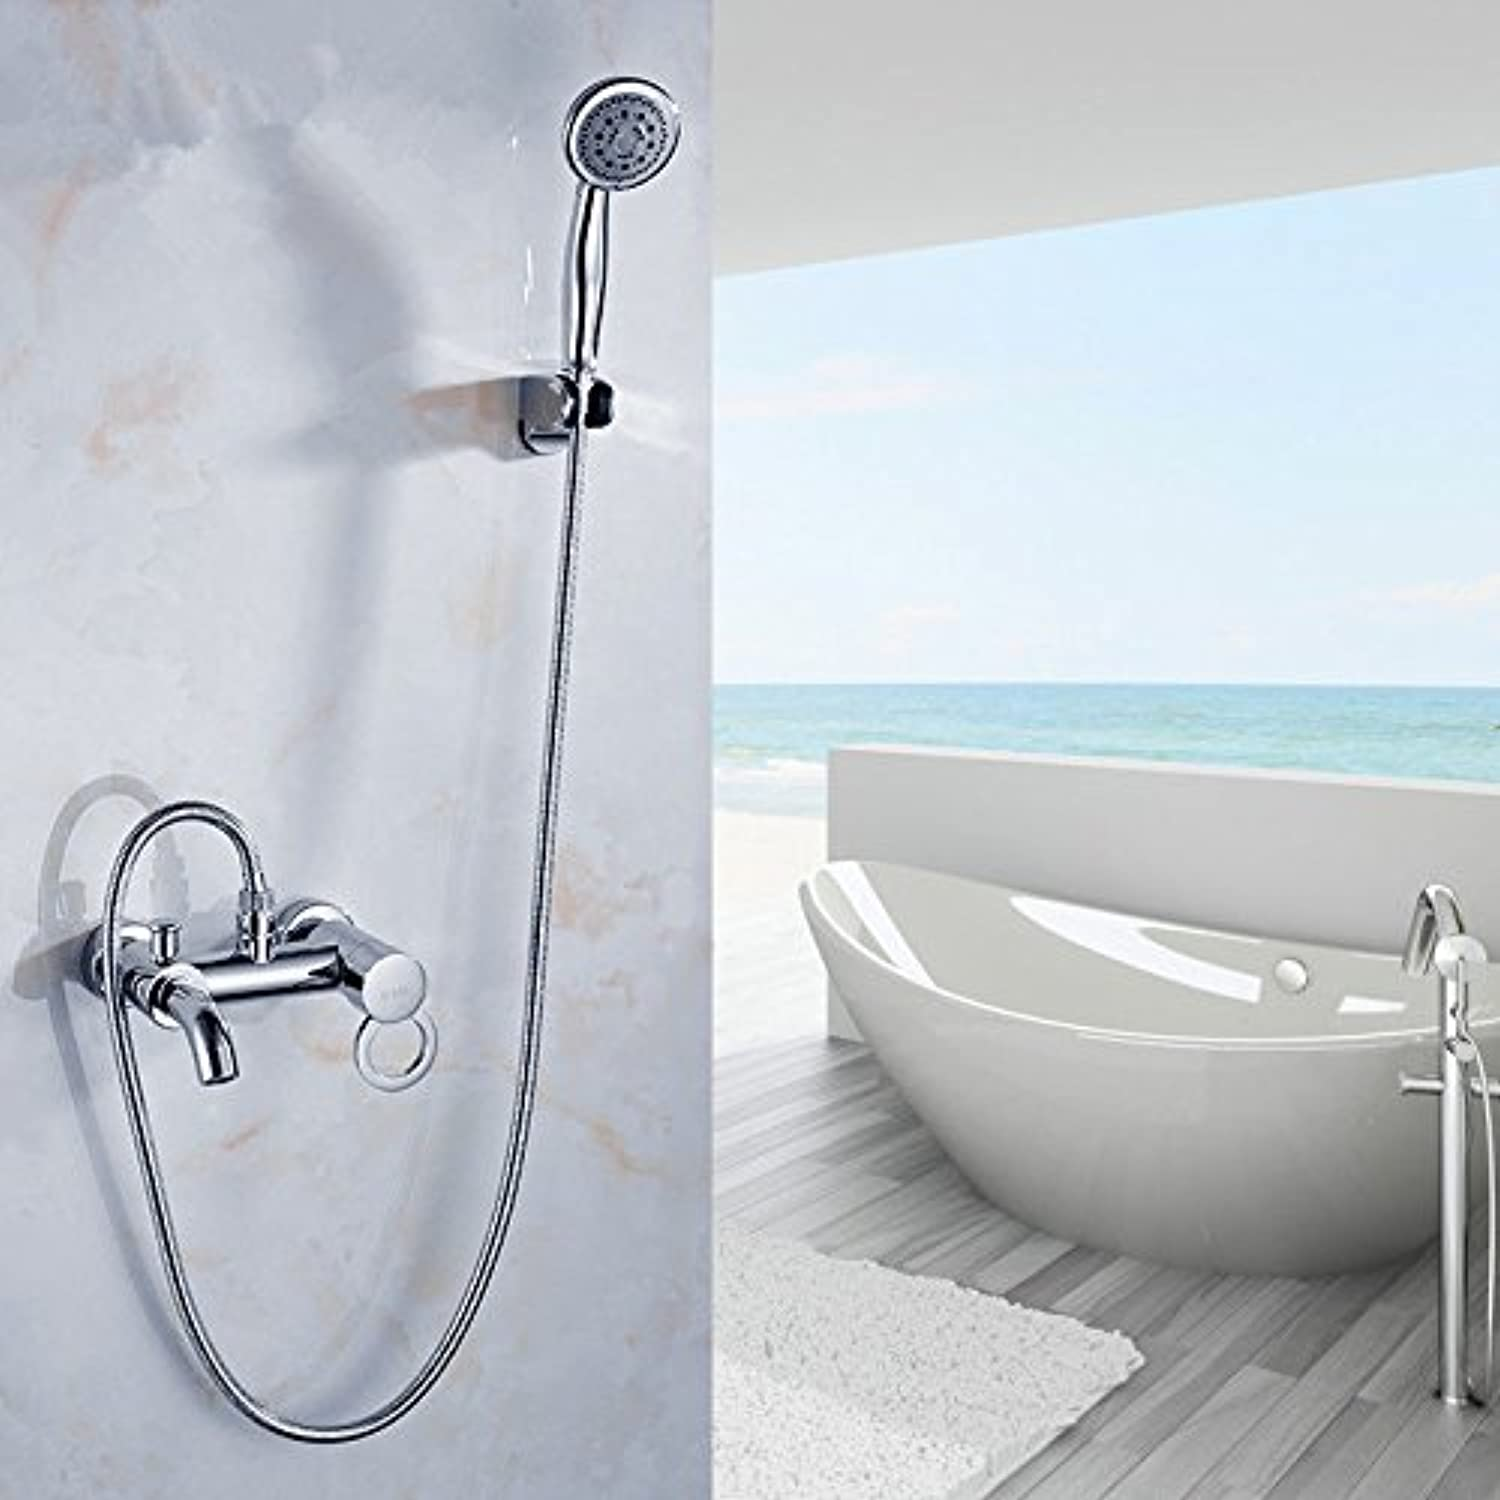 Hlluya Professional Sink Mixer Tap Kitchen Faucet The brass flush mount hot and cold faucets + solar water valve on the bath tub shower faucet